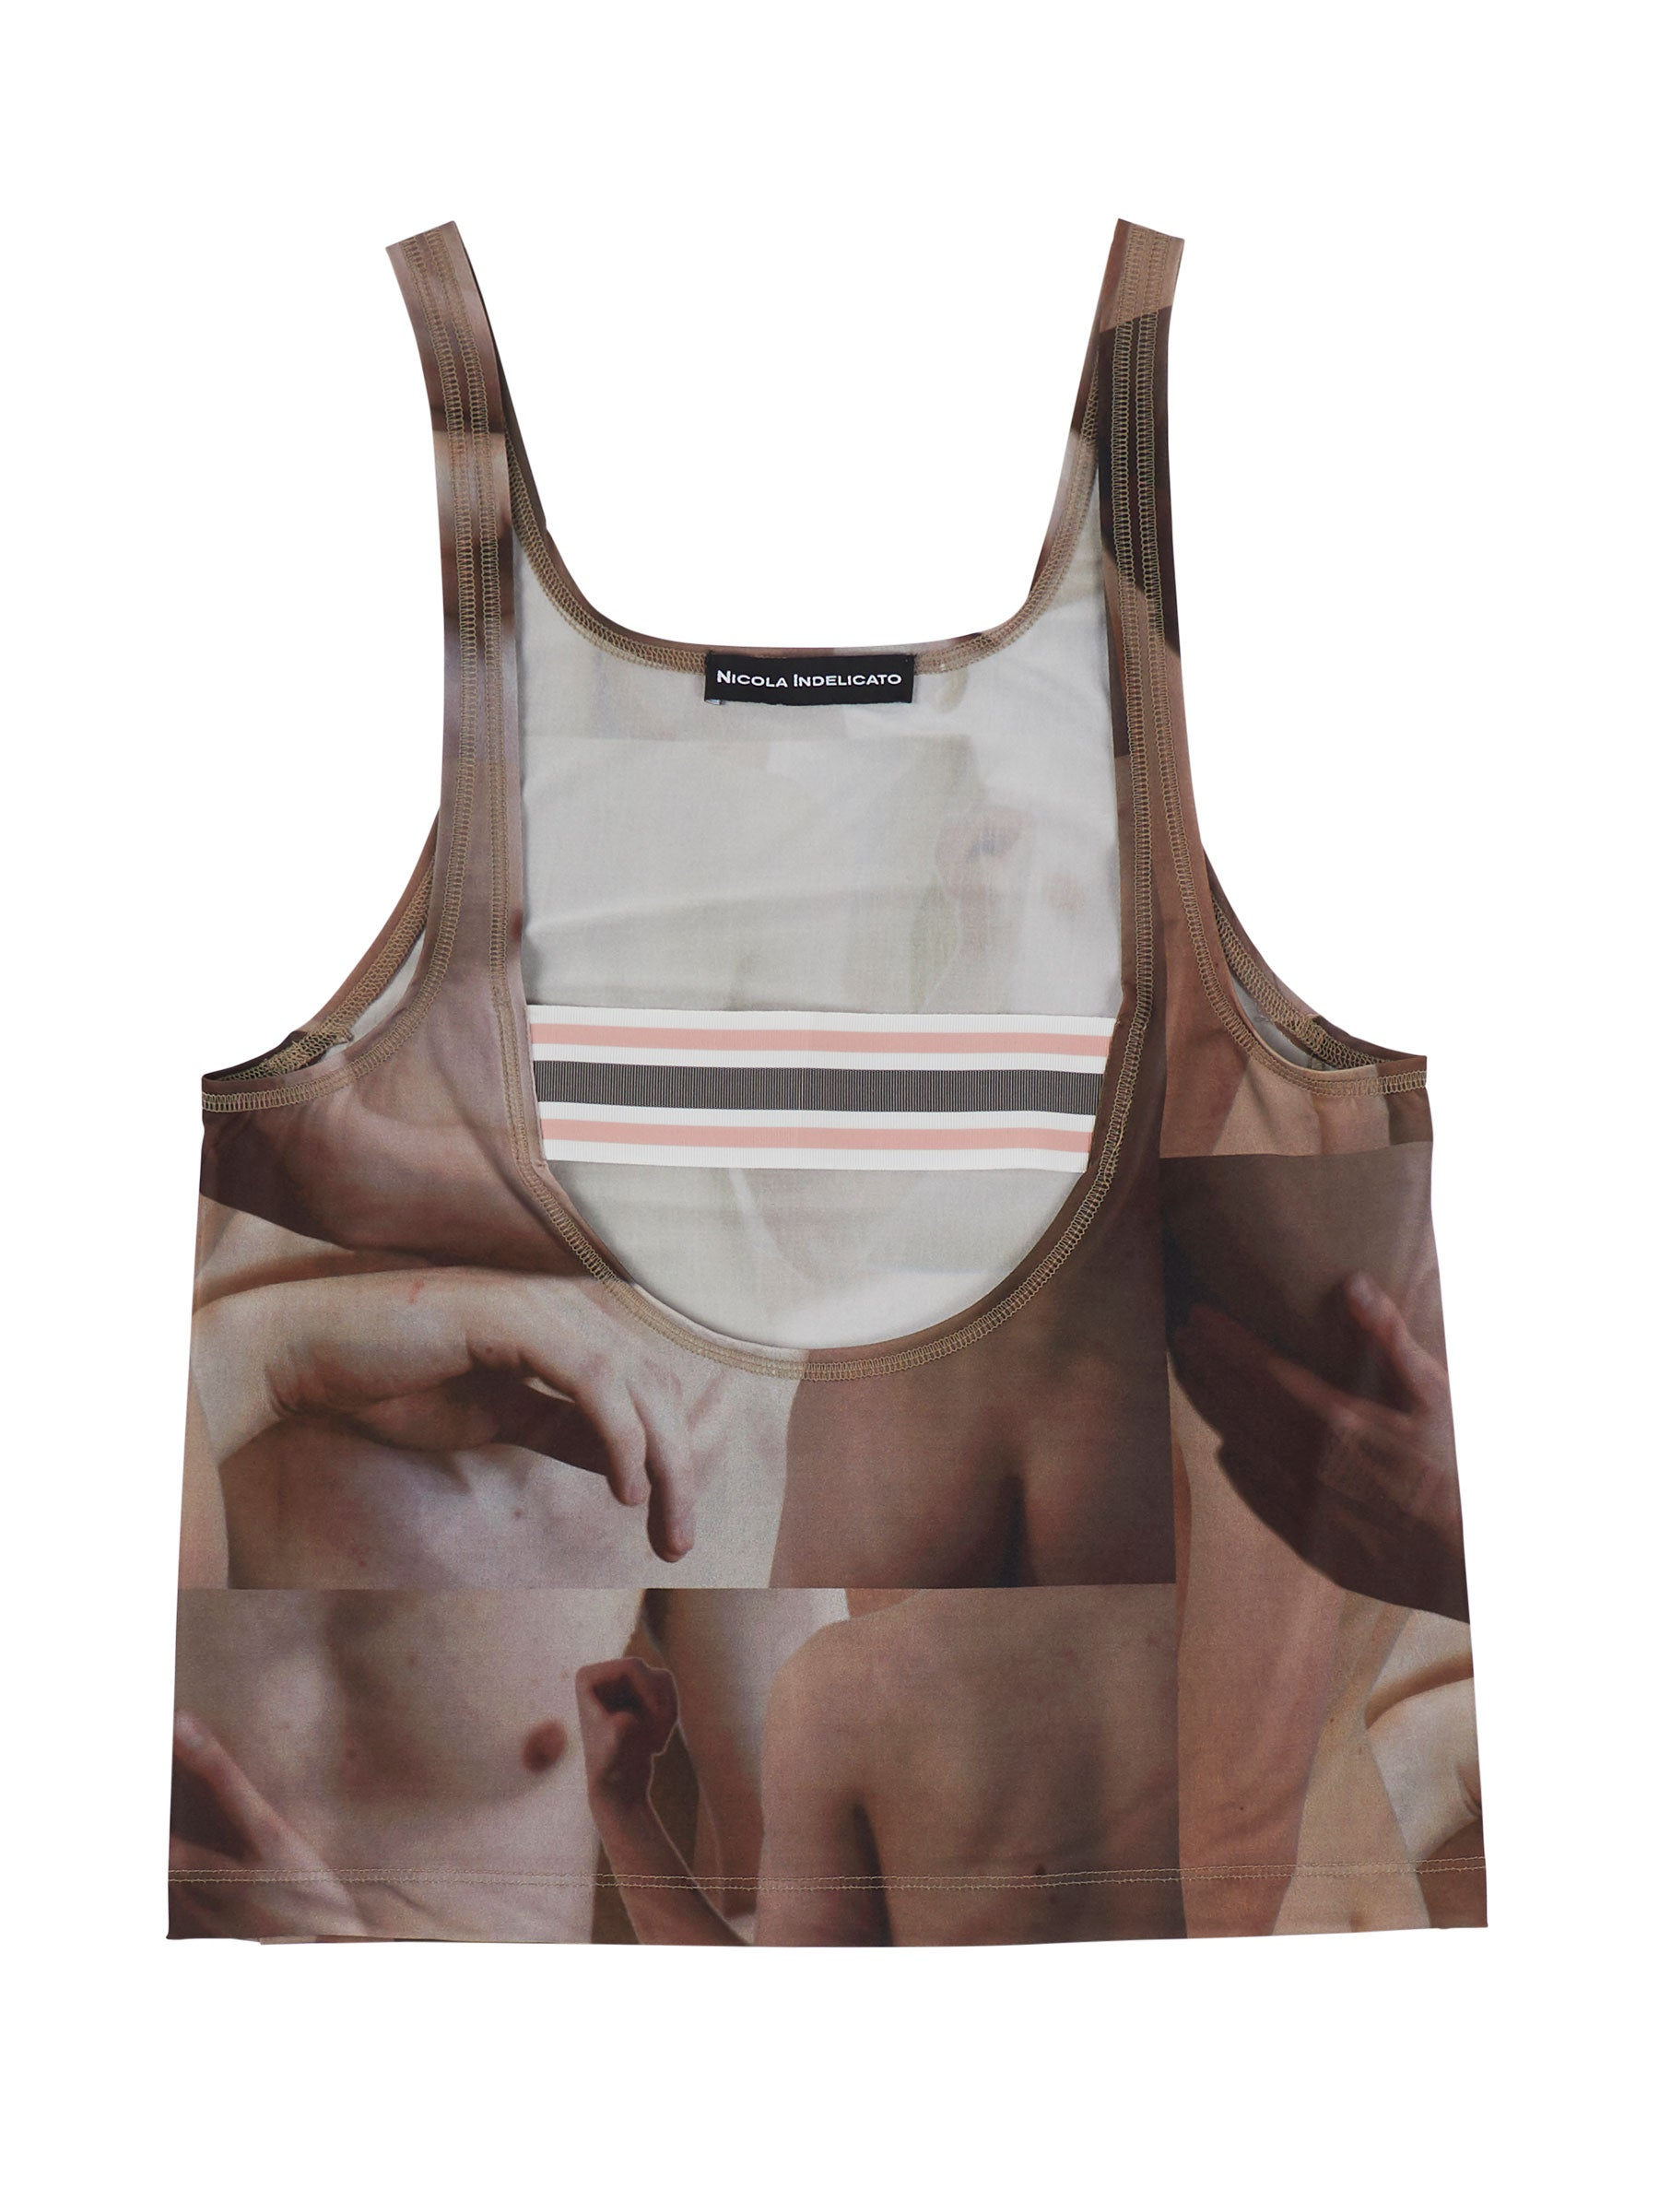 odd92 Nicola Indelicato Nude Print Wrestler Top Fall/Winter 2019 Menswear - 1